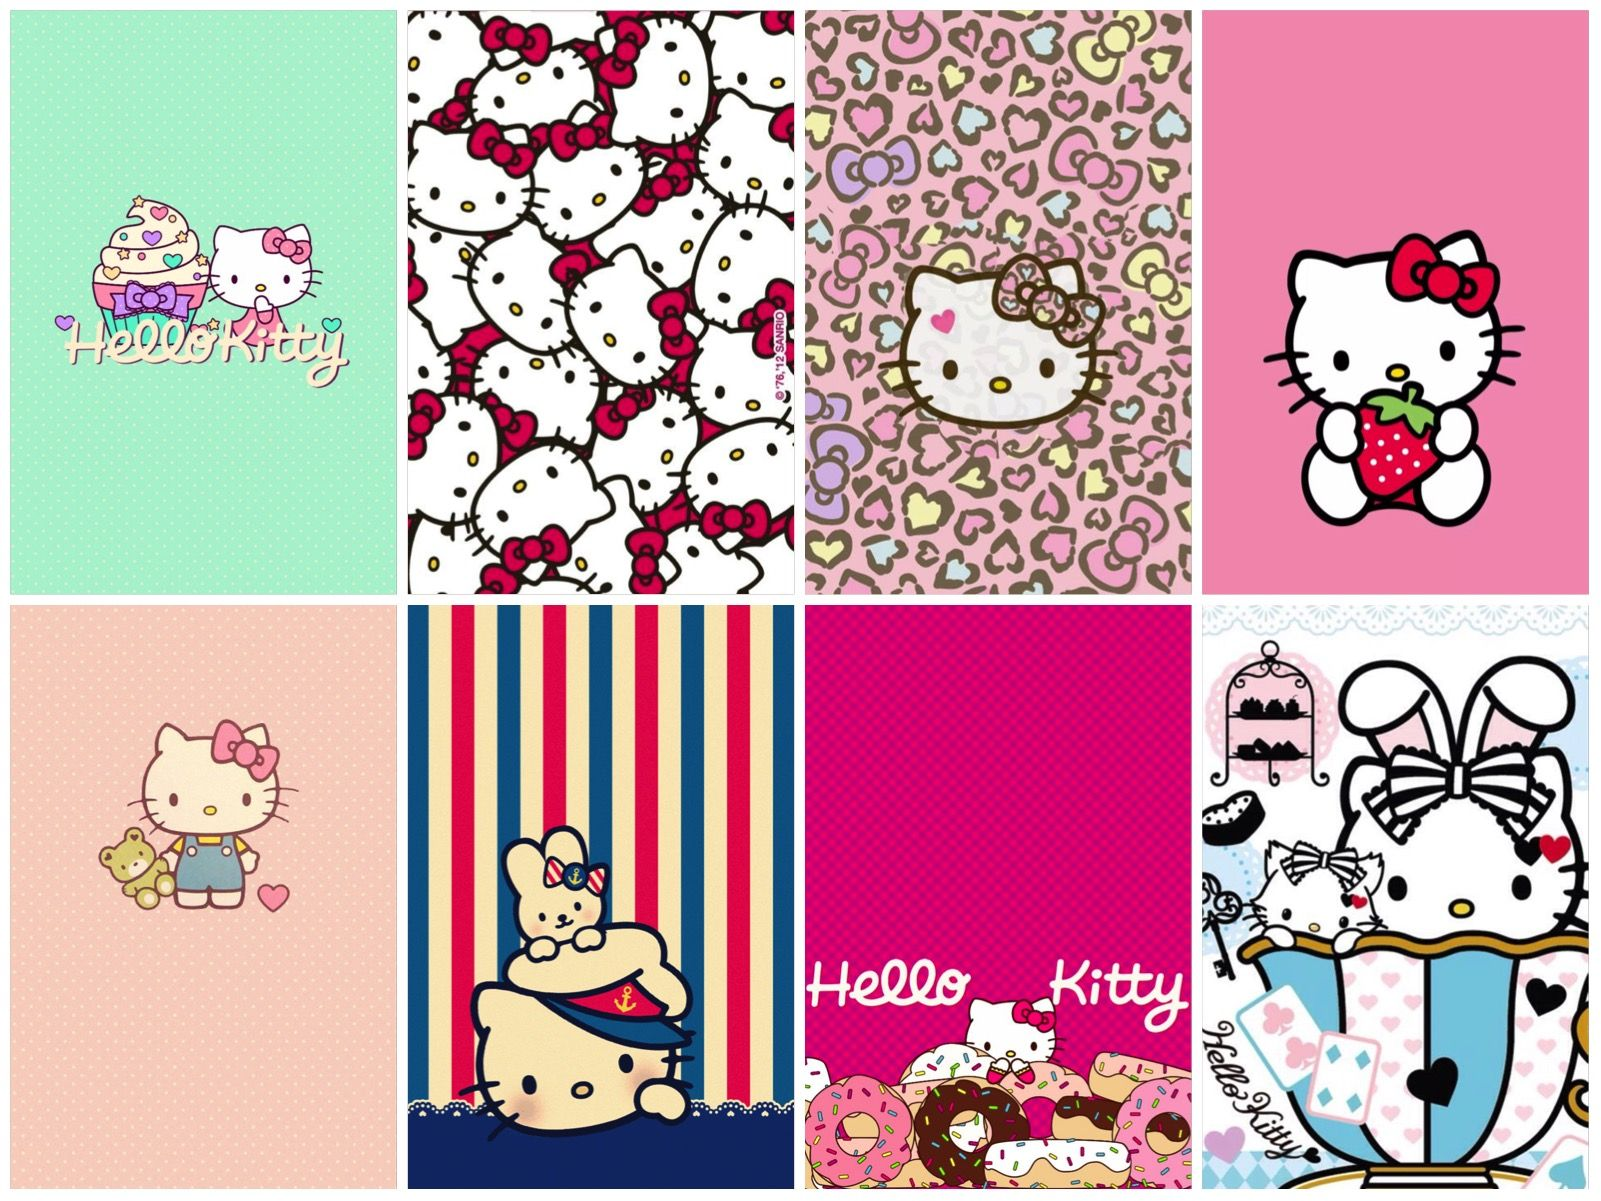 download hello kitty for wallpaper full hd wallpapers 2560